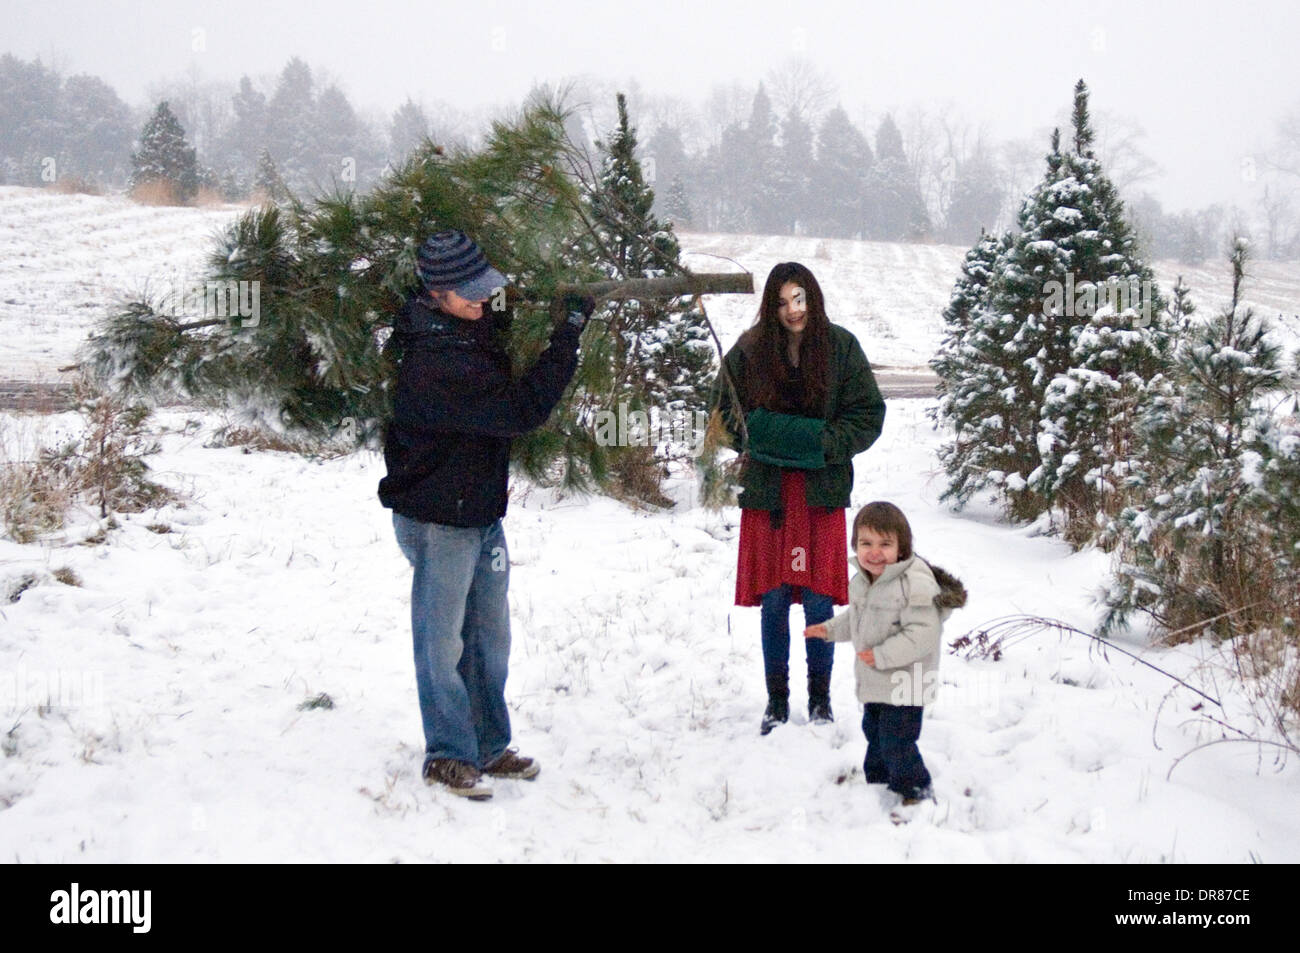 Christmas Tree Farm Family Stock Photos & Christmas Tree Farm Family ...